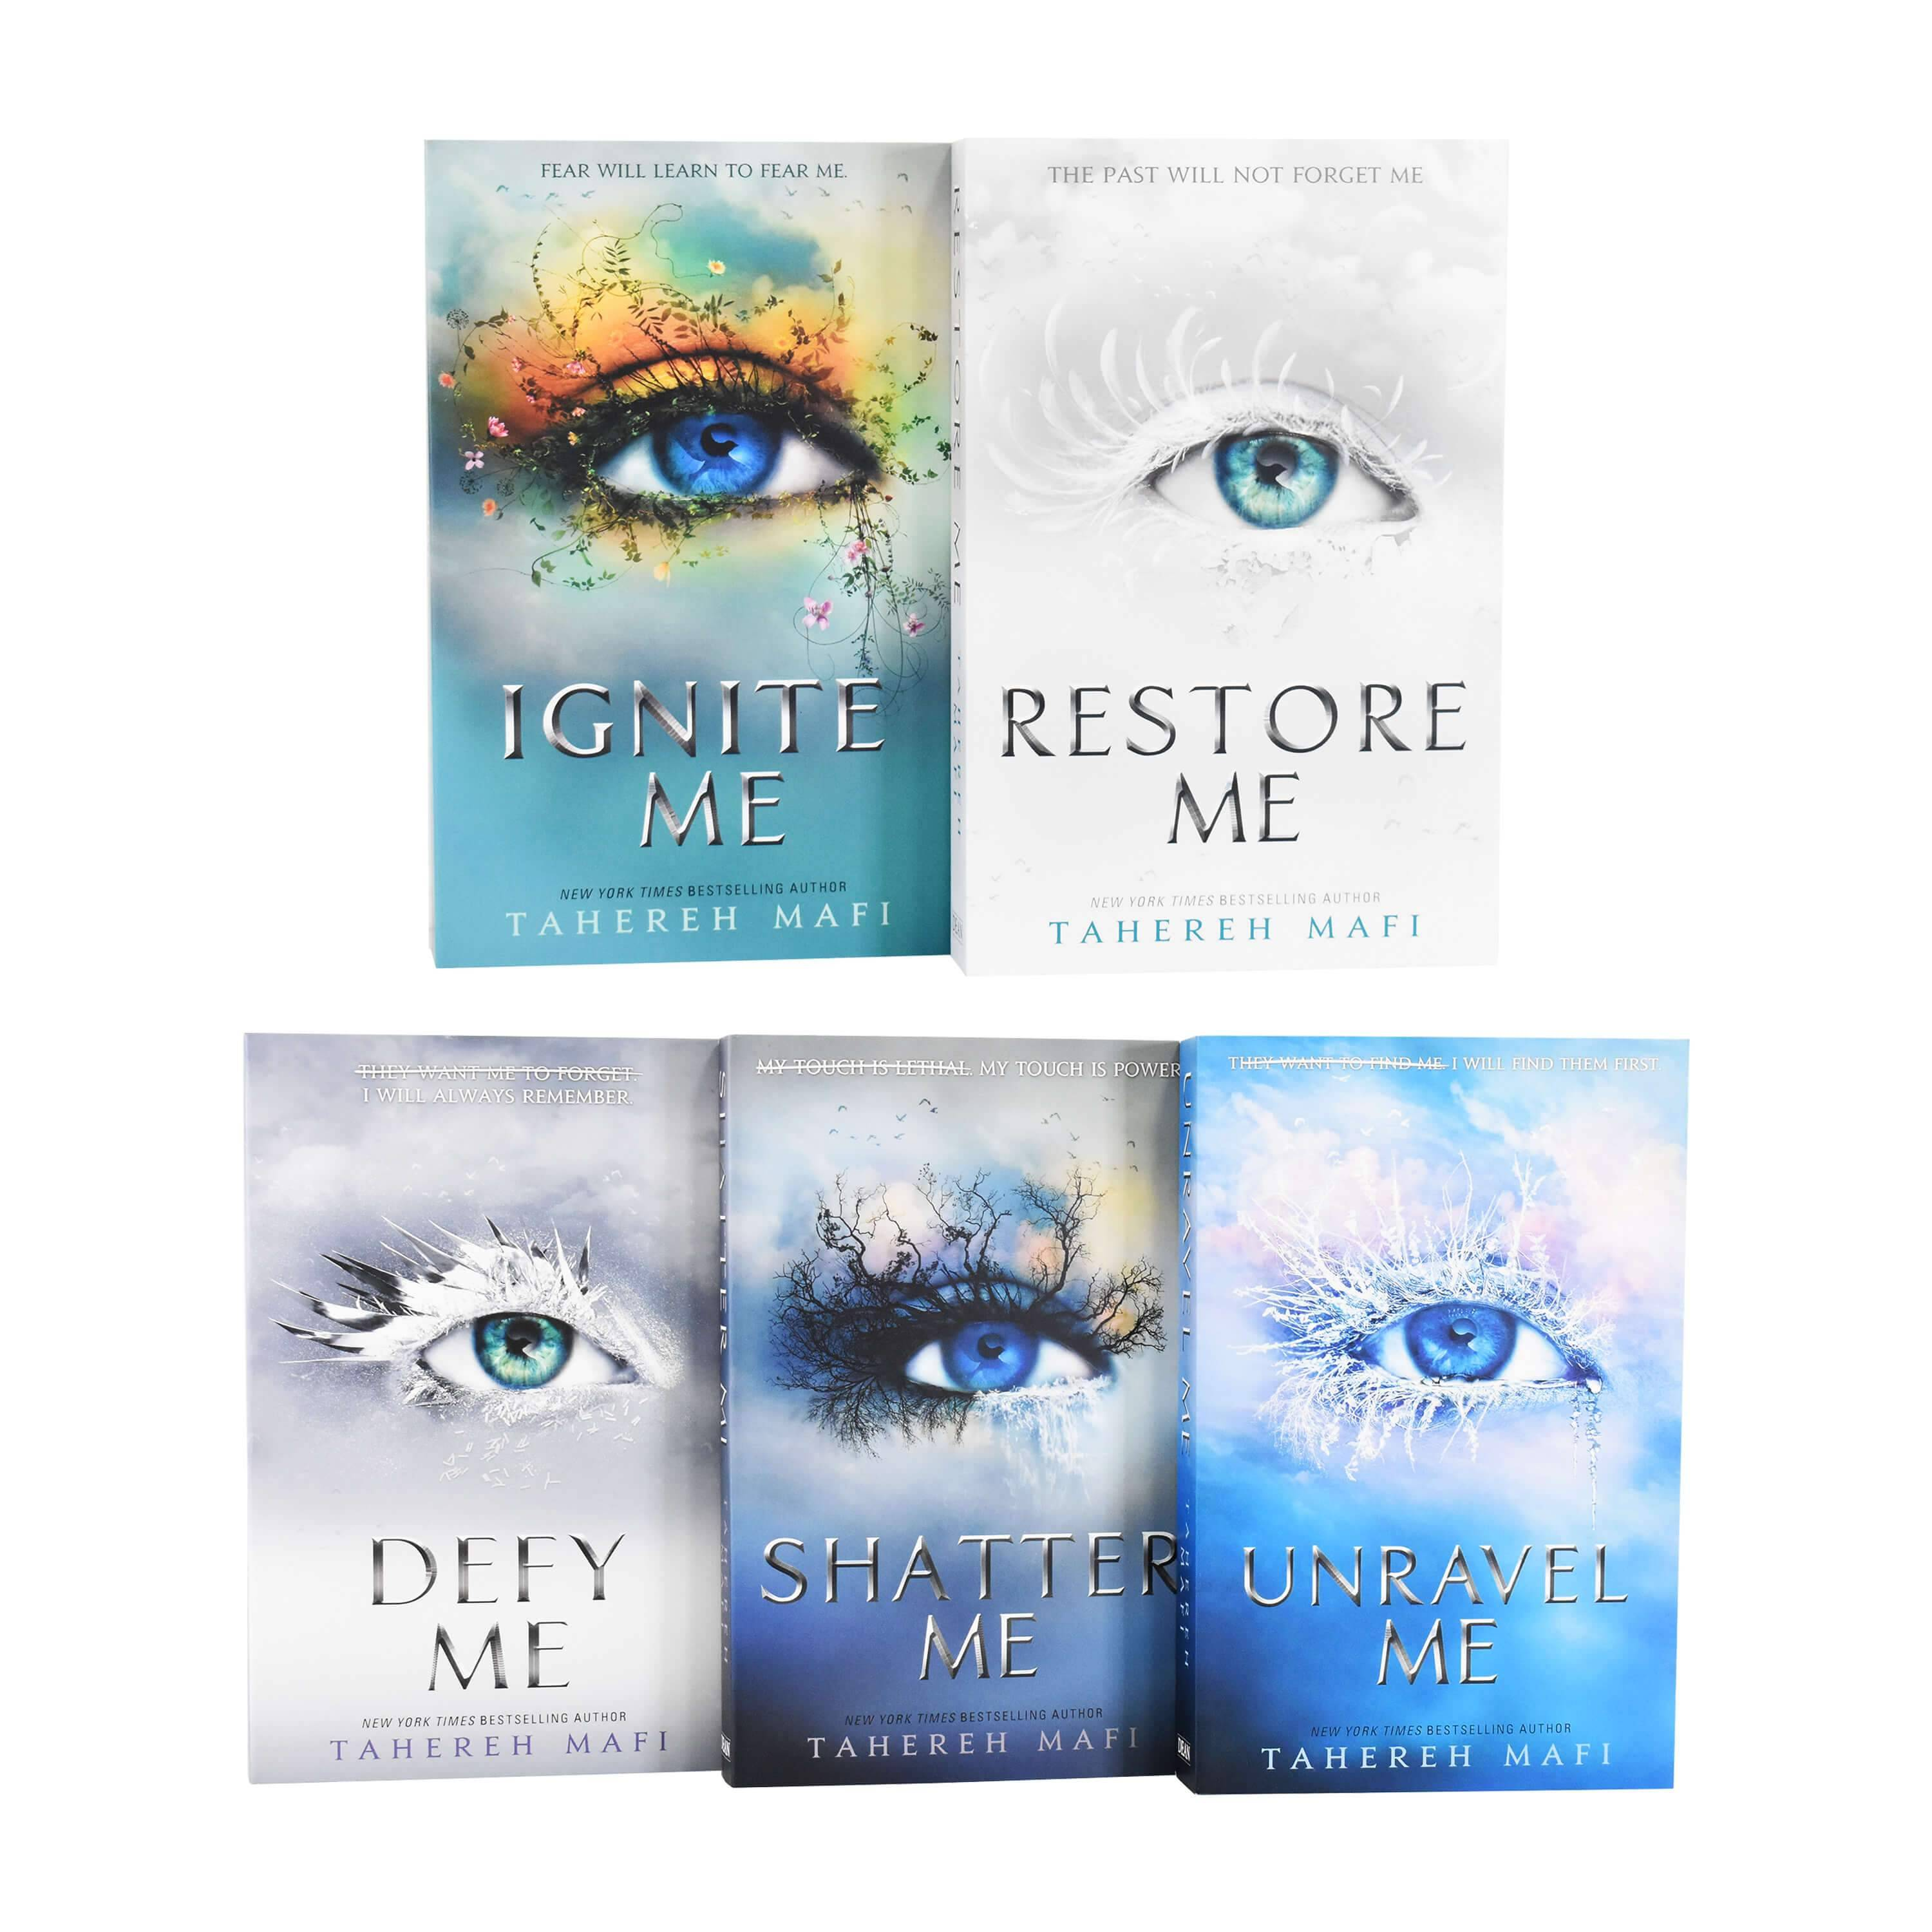 Dean Shatter Me Series Collection 5 Books Set By Tahereh Mafi - Young Adults - Paperback